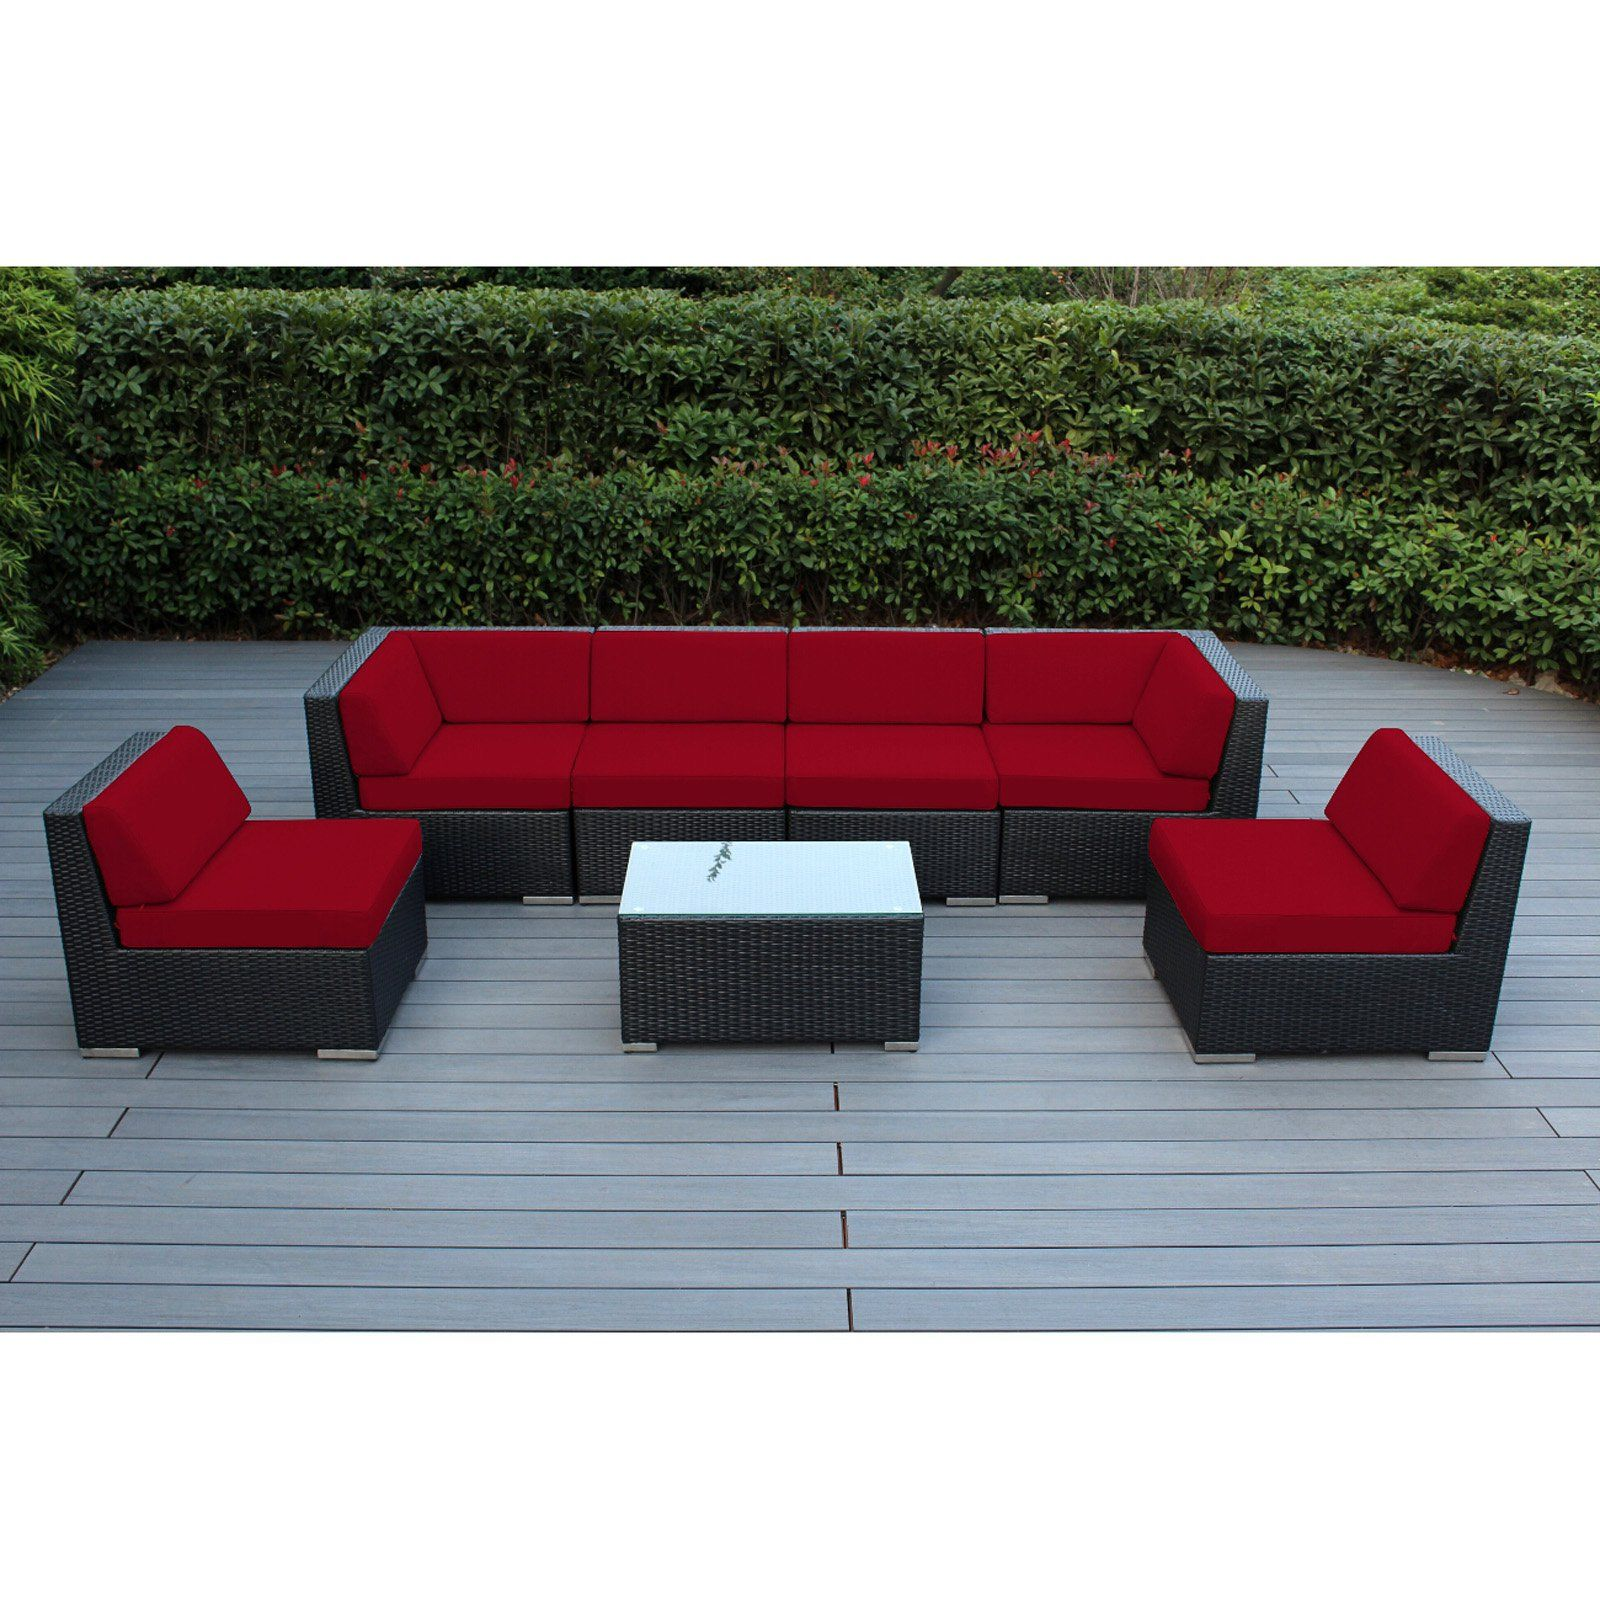 Outdoor Ohana All Weather Wicker 7 Piece Sectional Patio